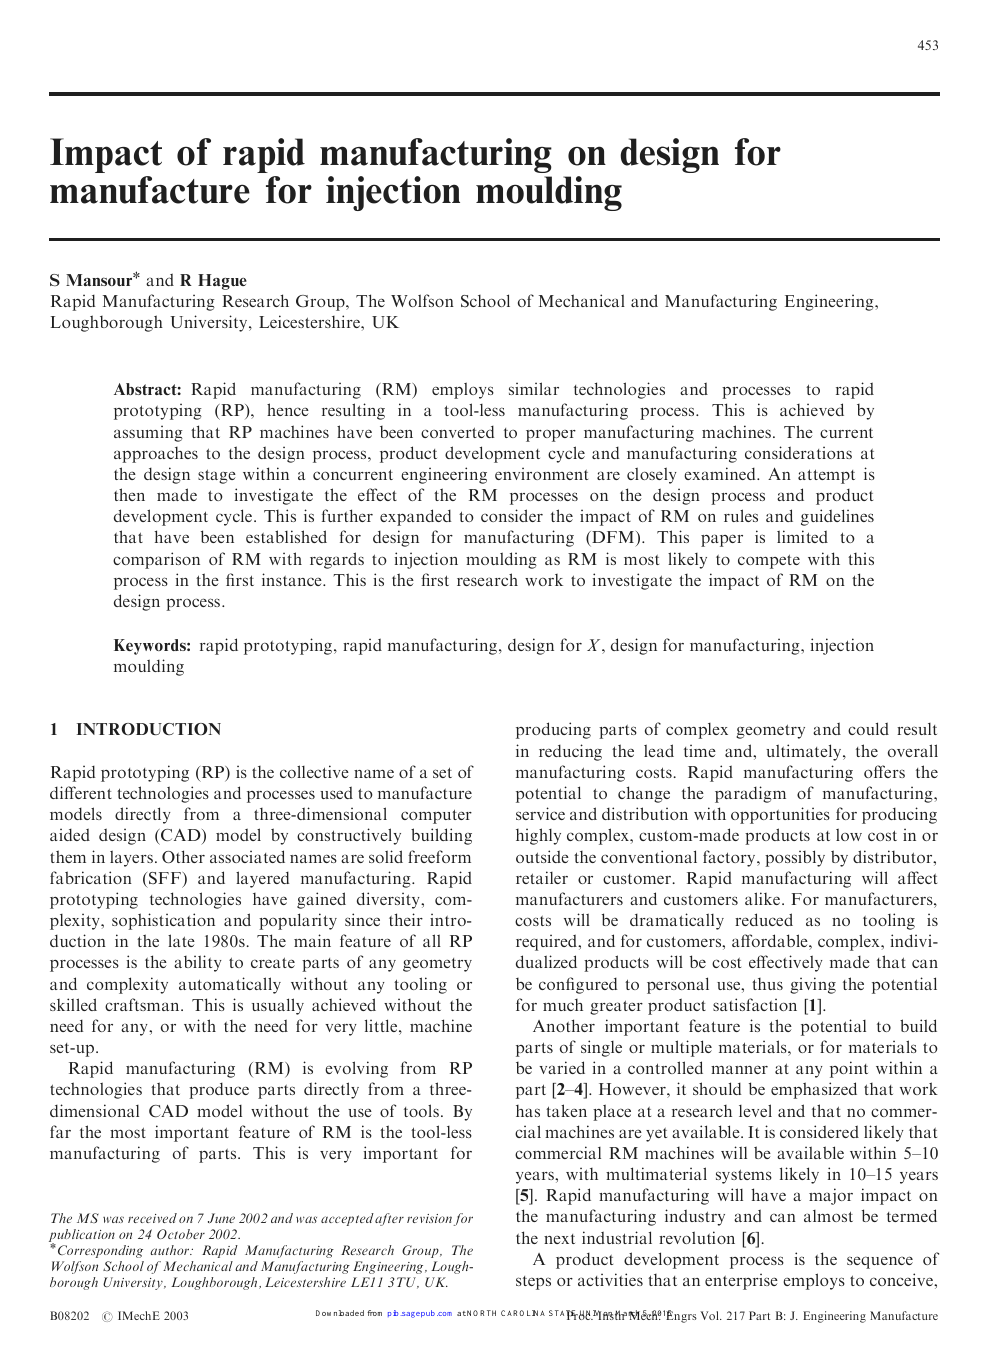 Impact Of Rapid Manufacturing On Design For Manufacture For Injection Moulding Topic Of Research Paper In Materials Engineering Download Scholarly Article Pdf And Read For Free On Cyberleninka Open Science Hub